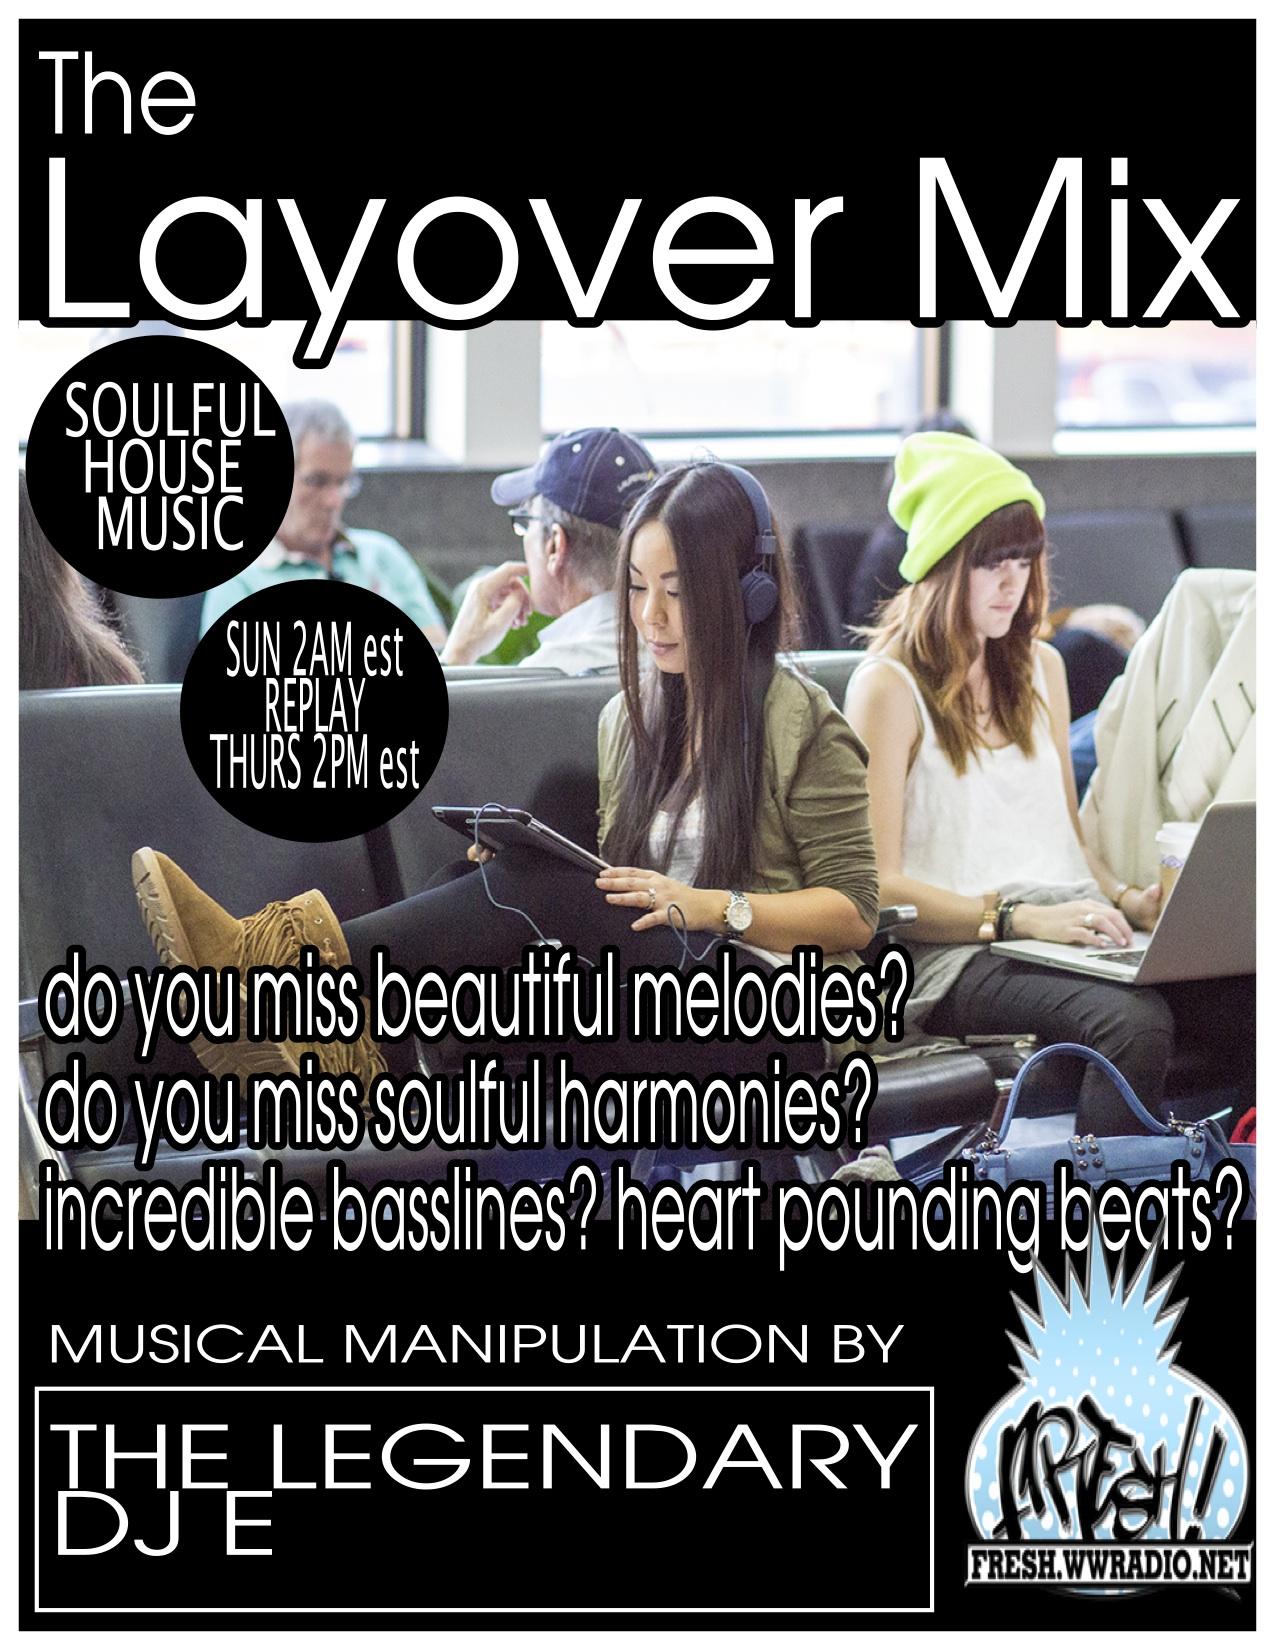 THE LAYOVER MIX